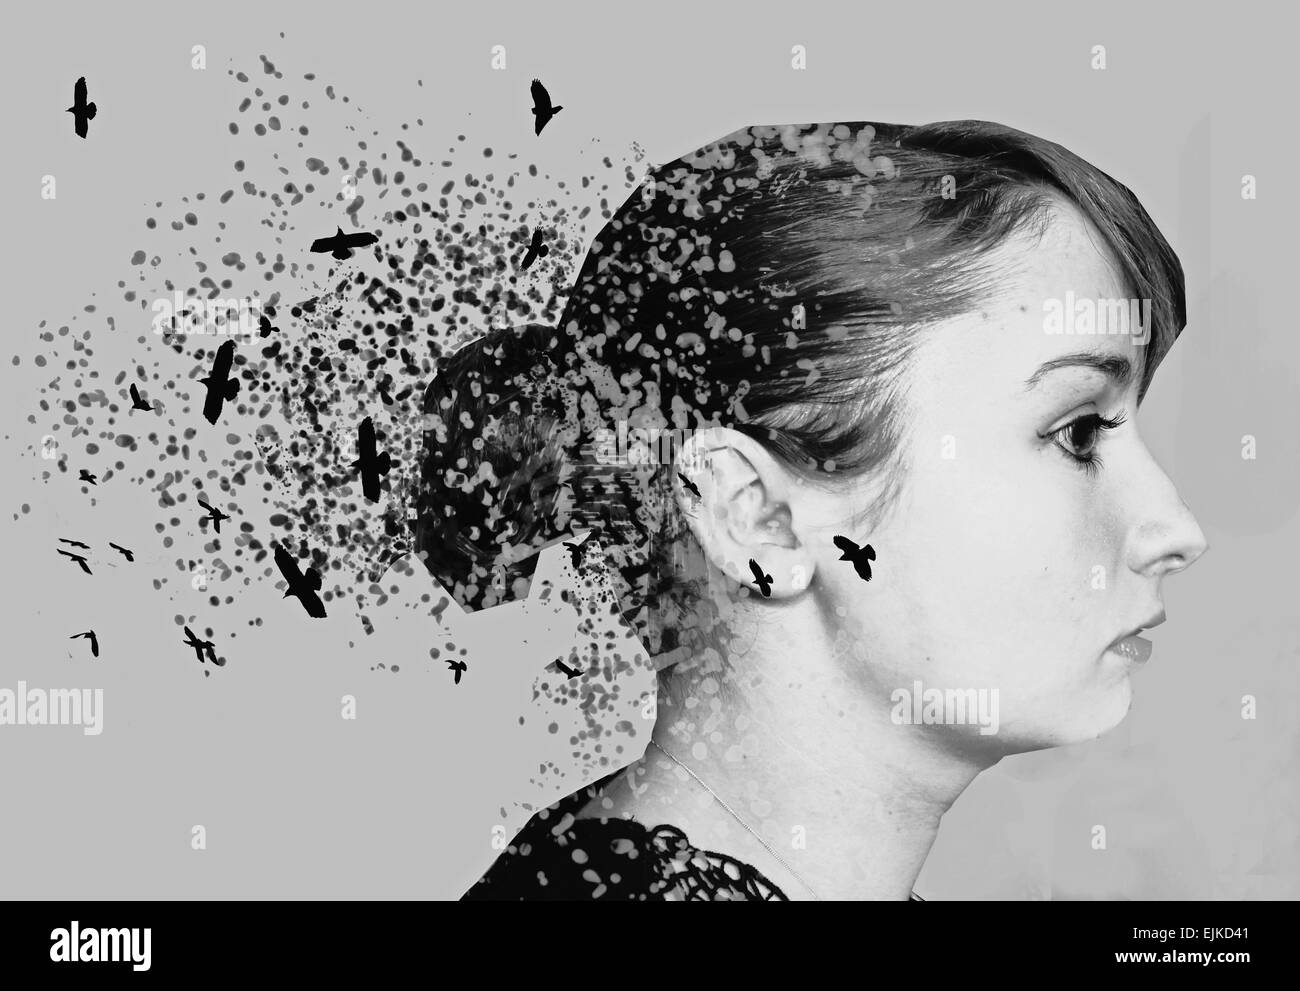 Black and white photography paint splatter abstract art artistic